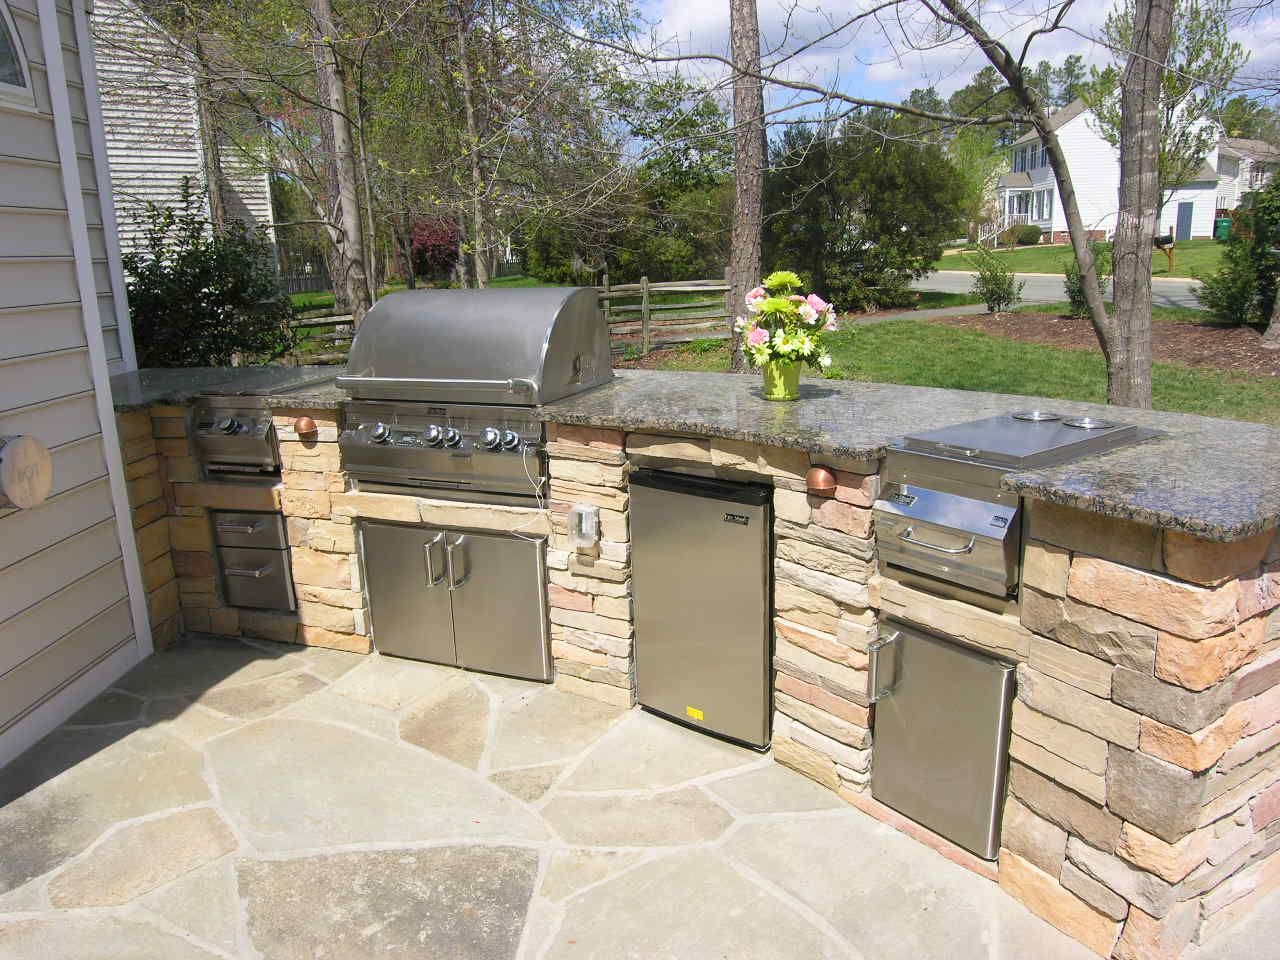 outdoor kitchen designs backyard patio with kitchen ideas This custom outdoor kitchen design has space for several outdoor